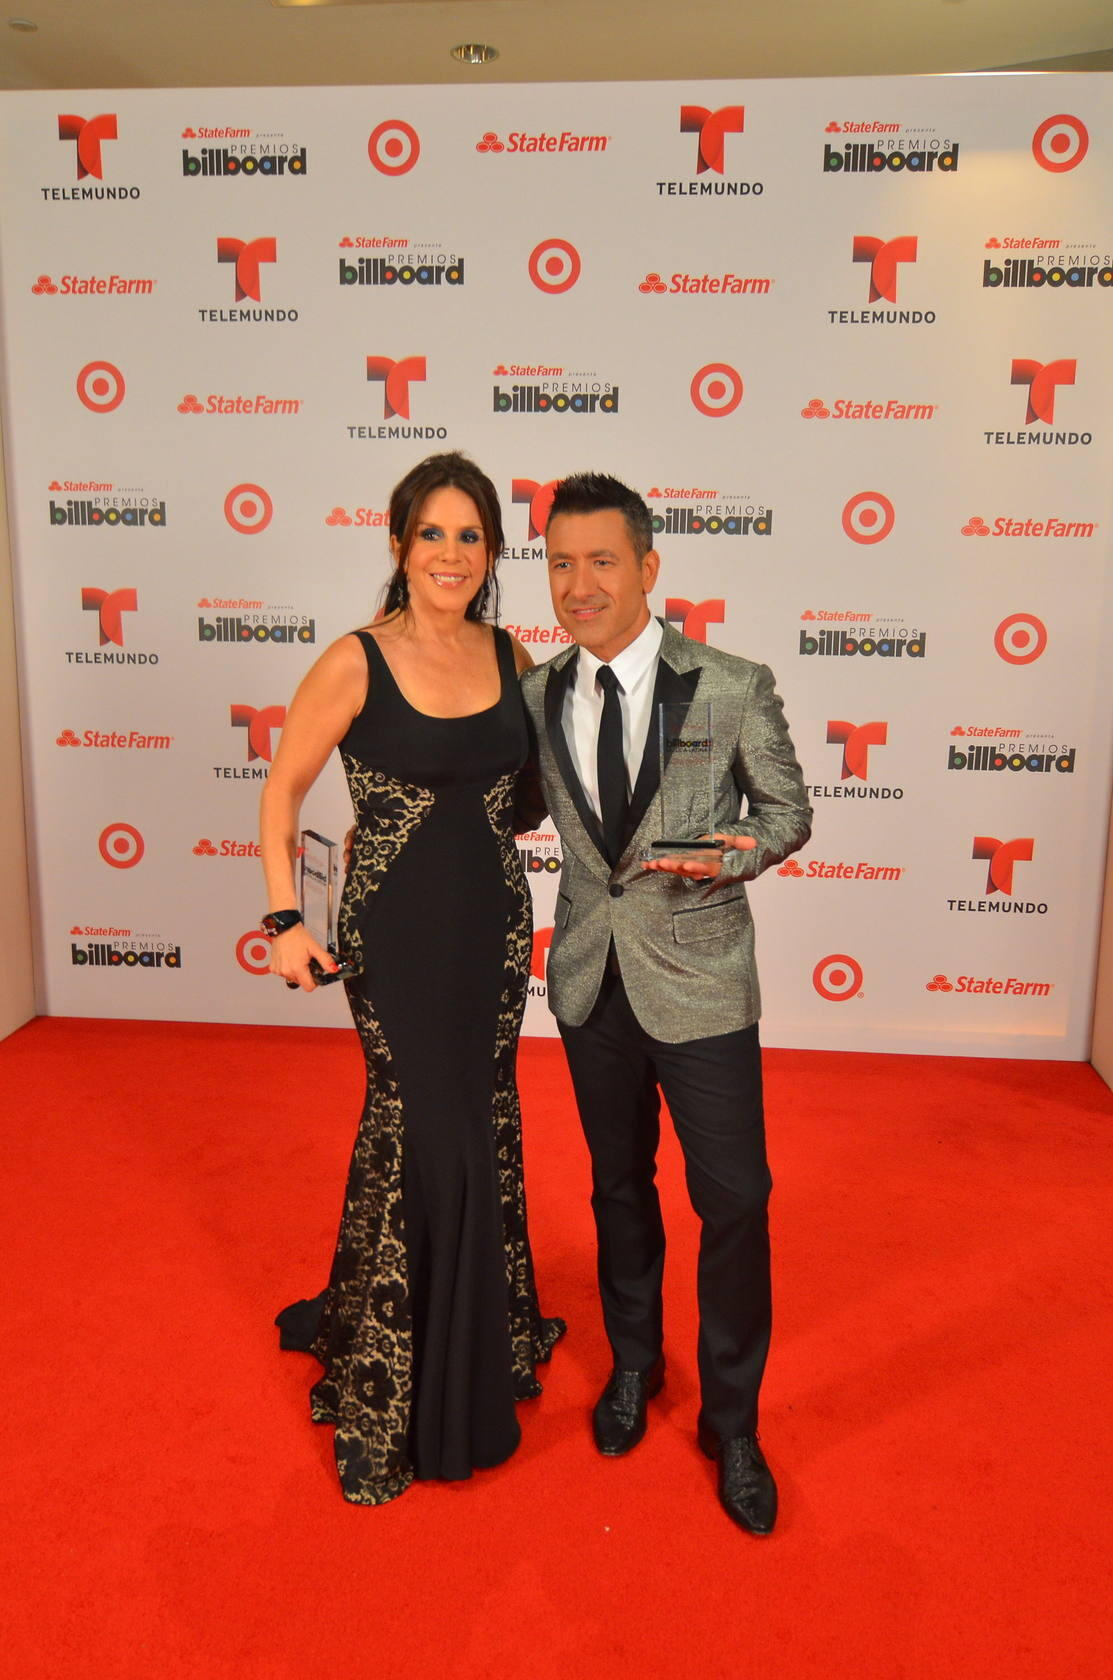 Premios Billboard a la M&uacute;sica Latina 2013